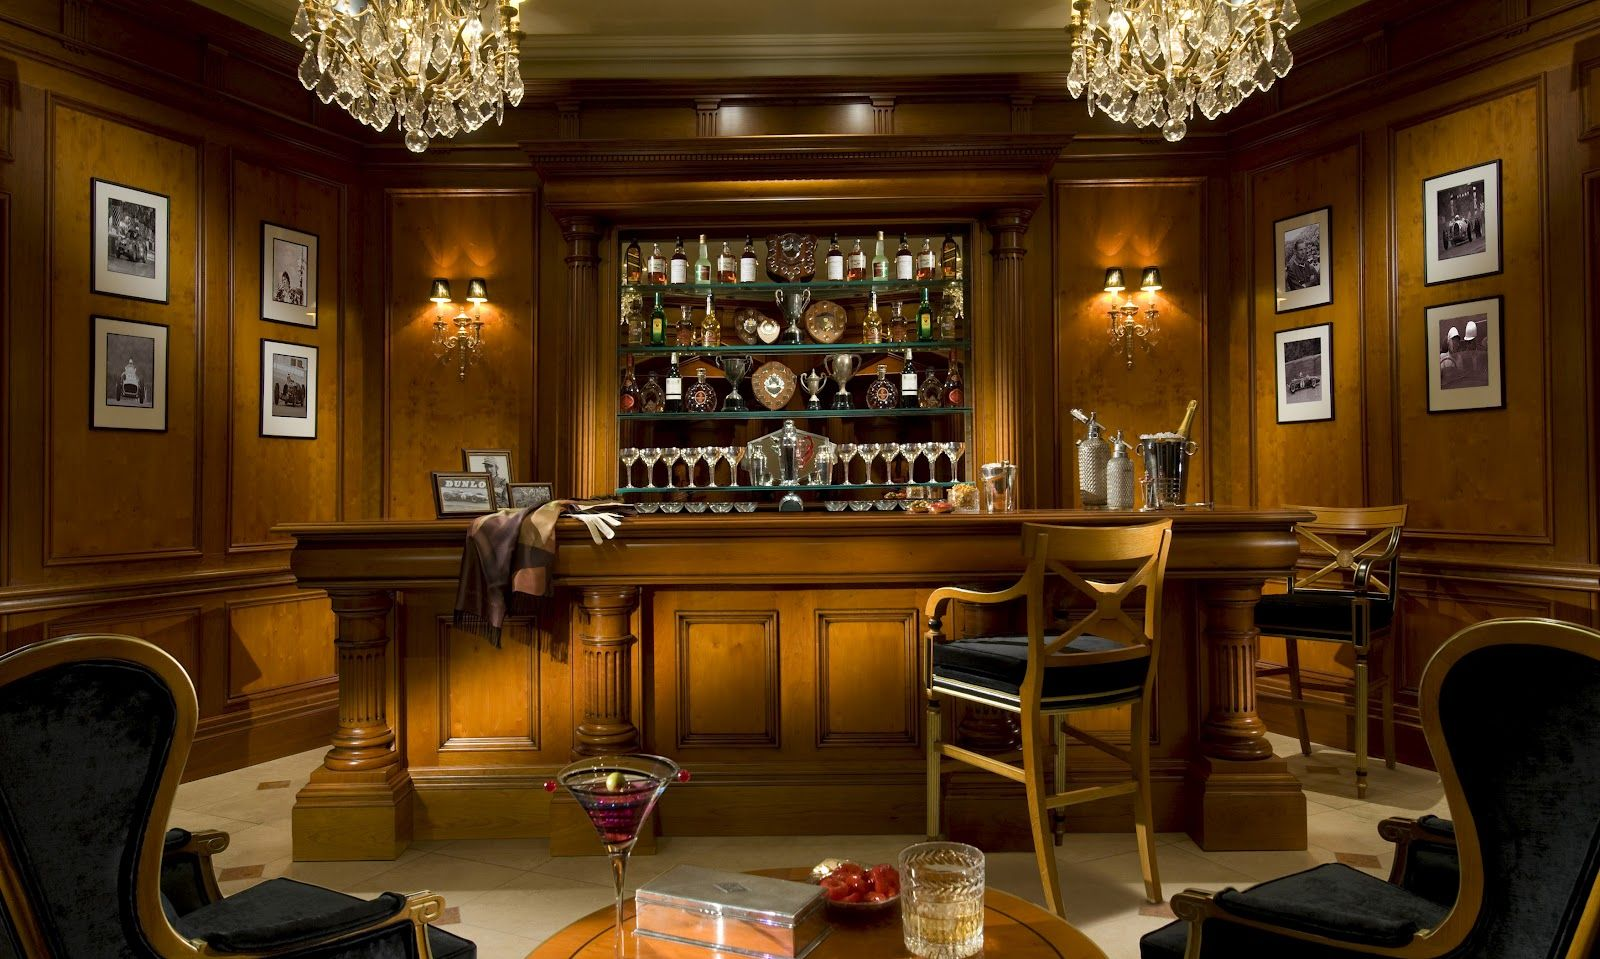 Luxury Home Bars Design Yew Antique Luster Paneling And Bar With Mirror Detail Home Bar